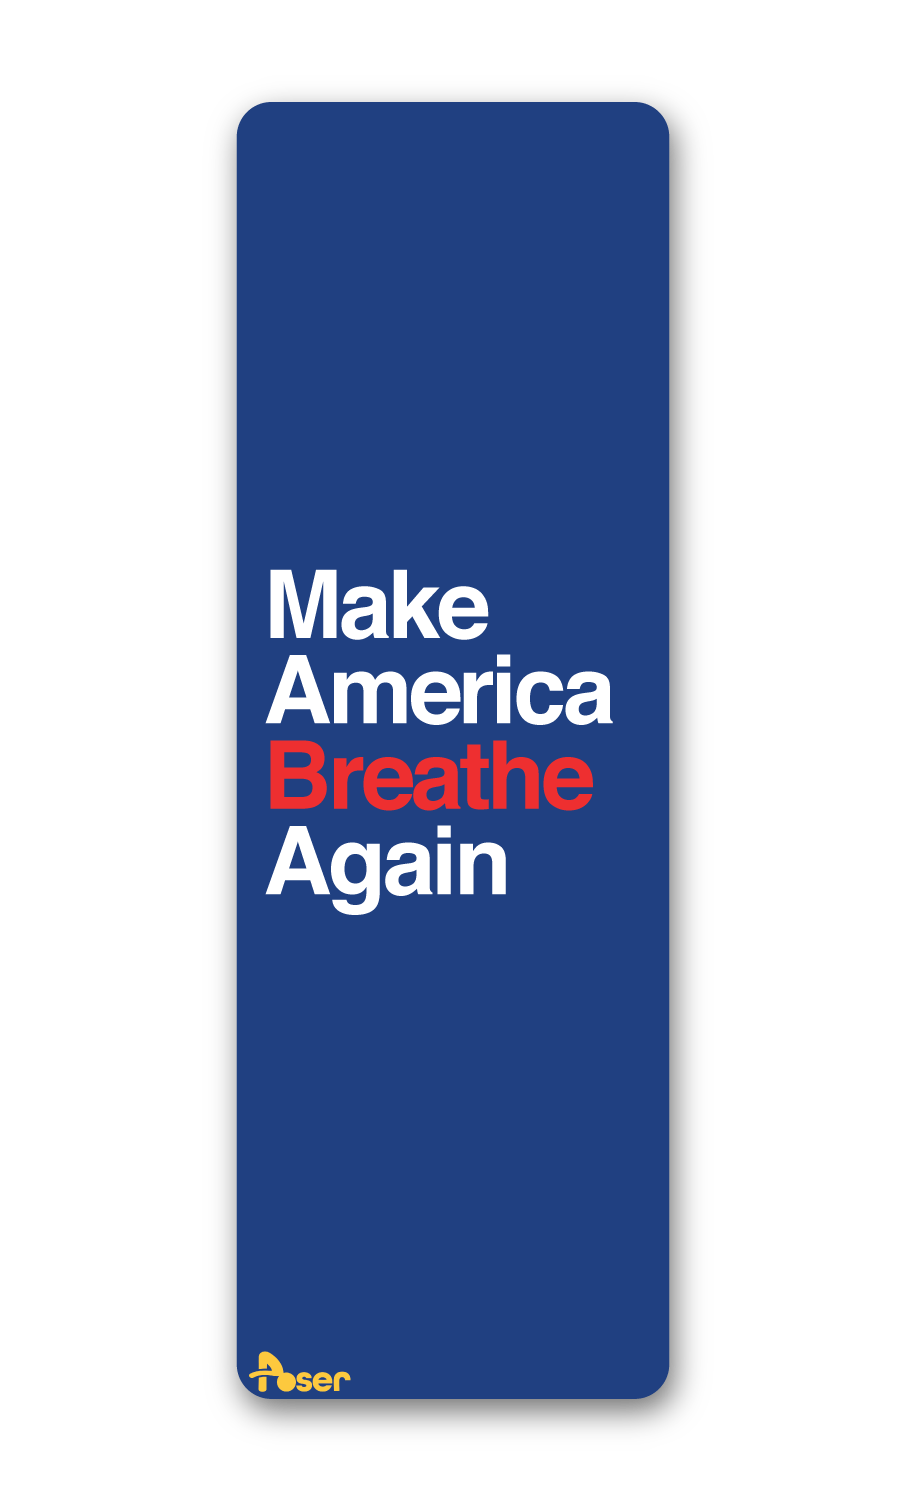 Make America Breathe Again